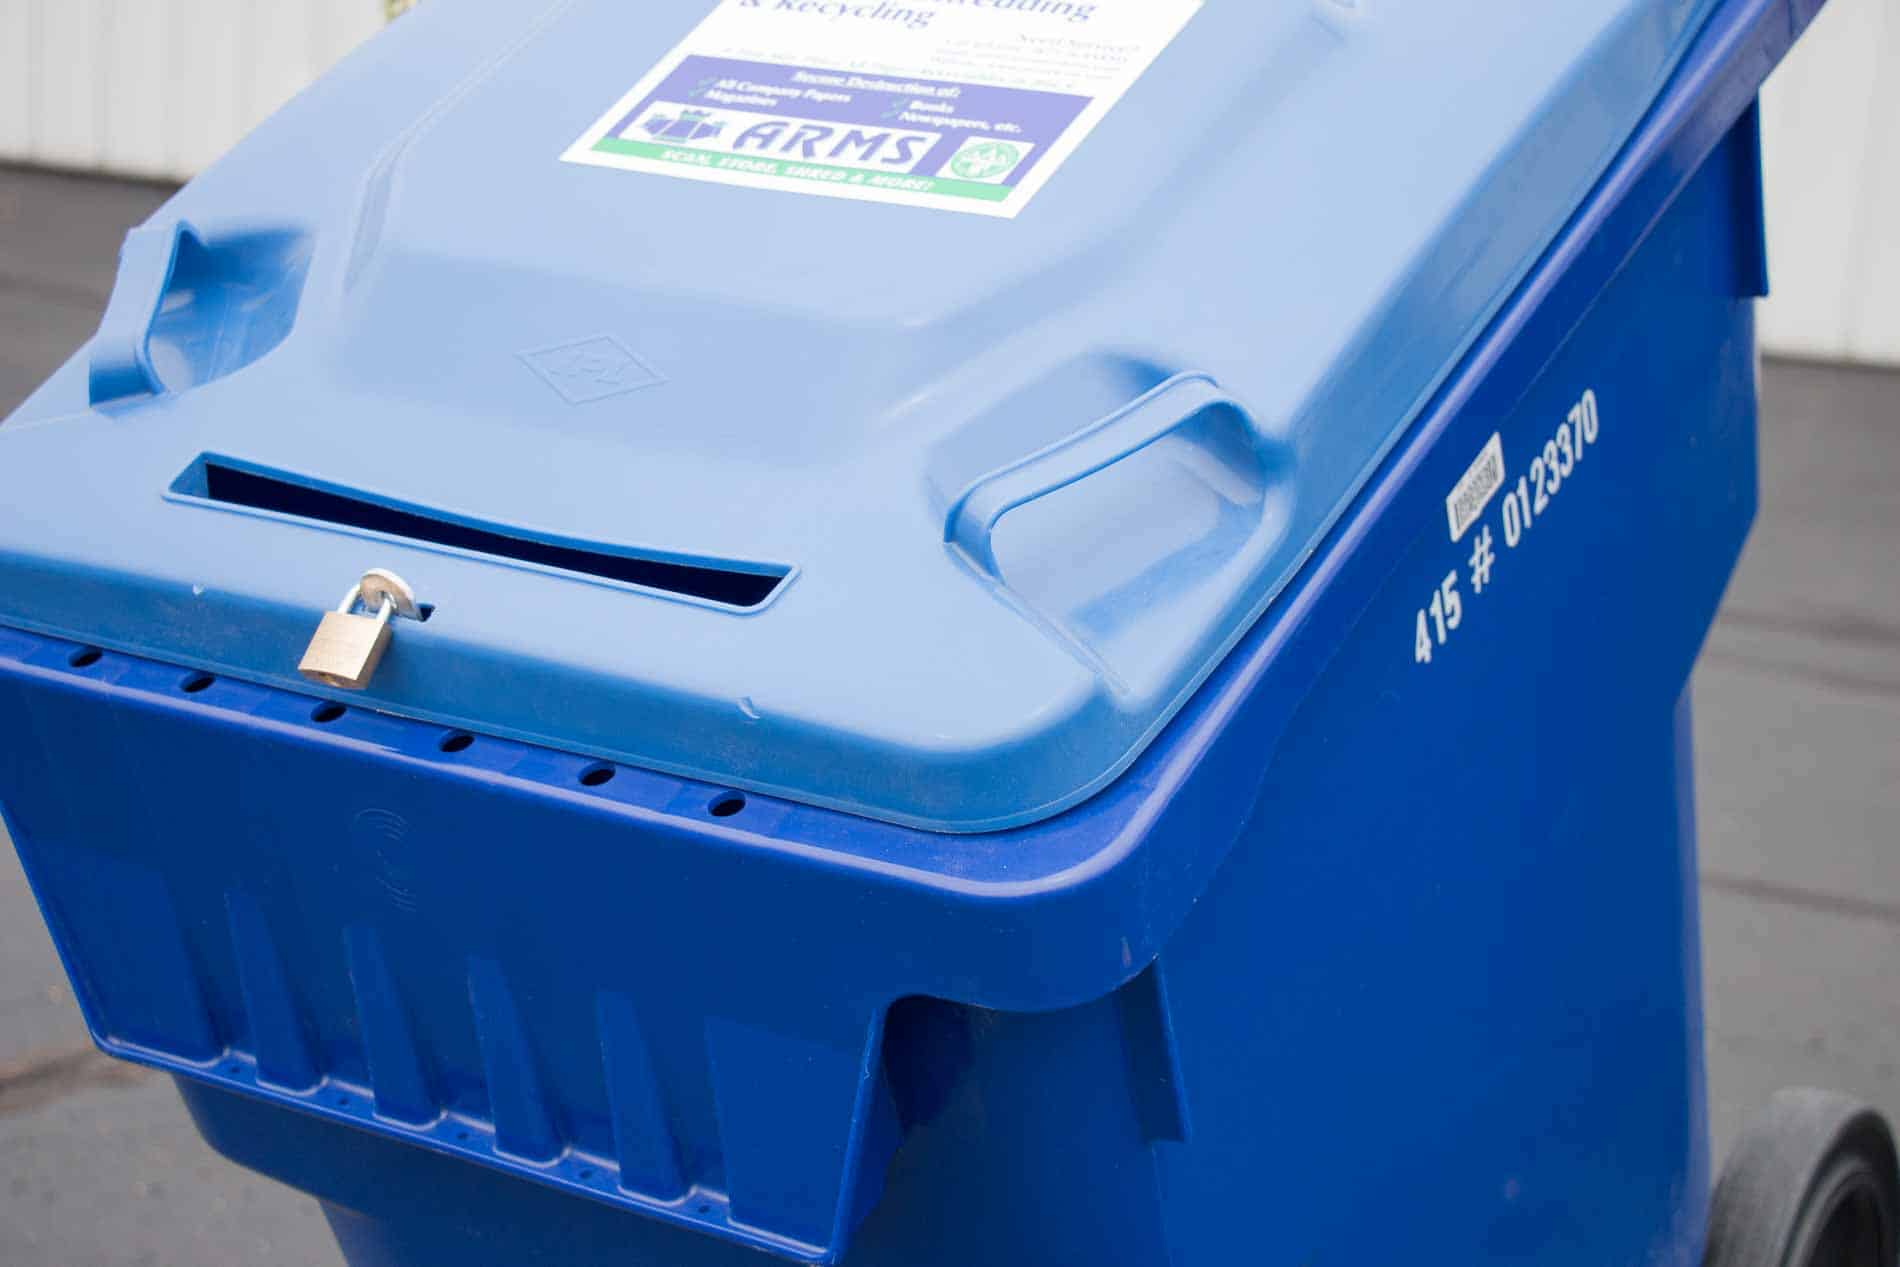 ARMS Provides Secure Document Shredding Services in Wisconsin